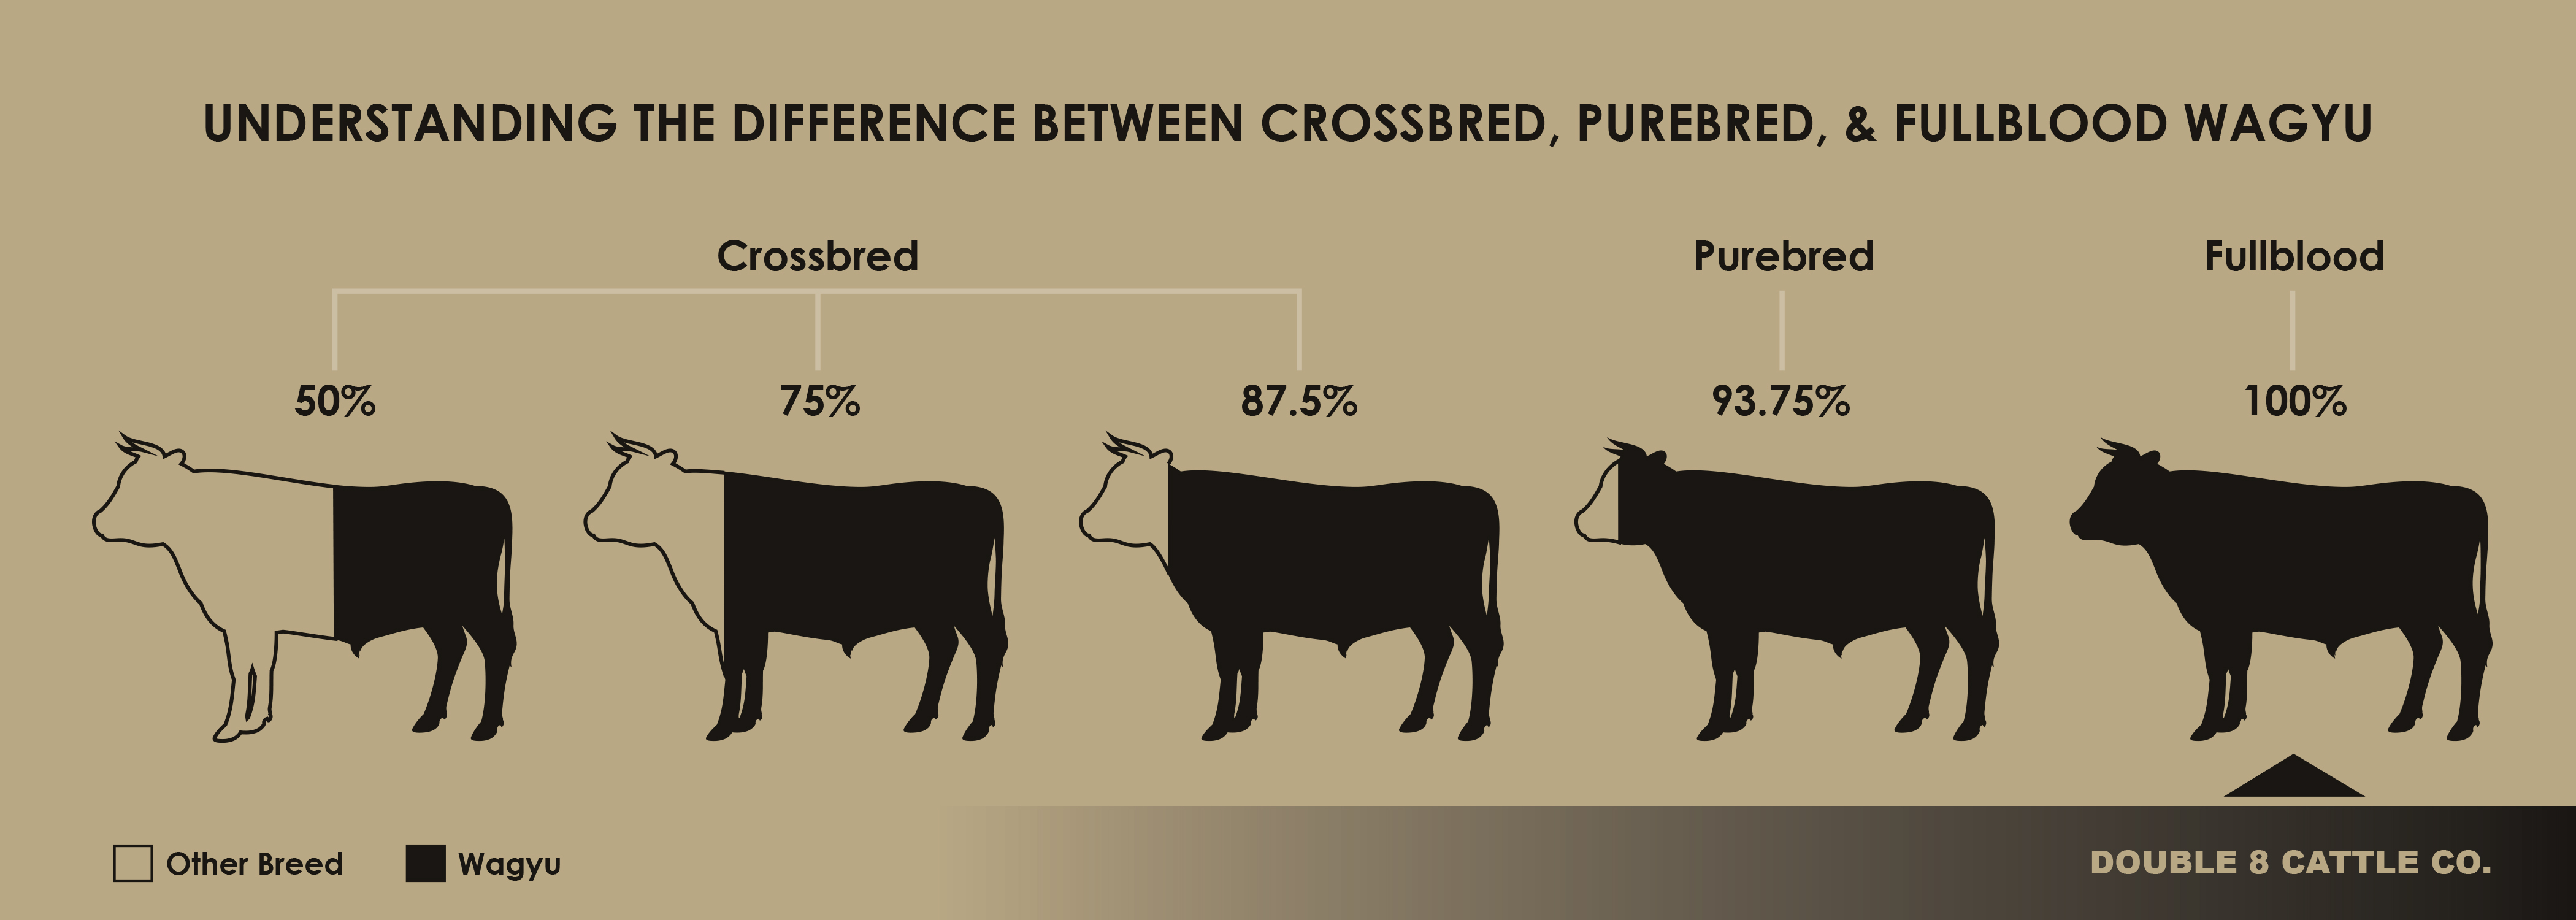 Difference between crossbred, purebred and fullblood wagyu